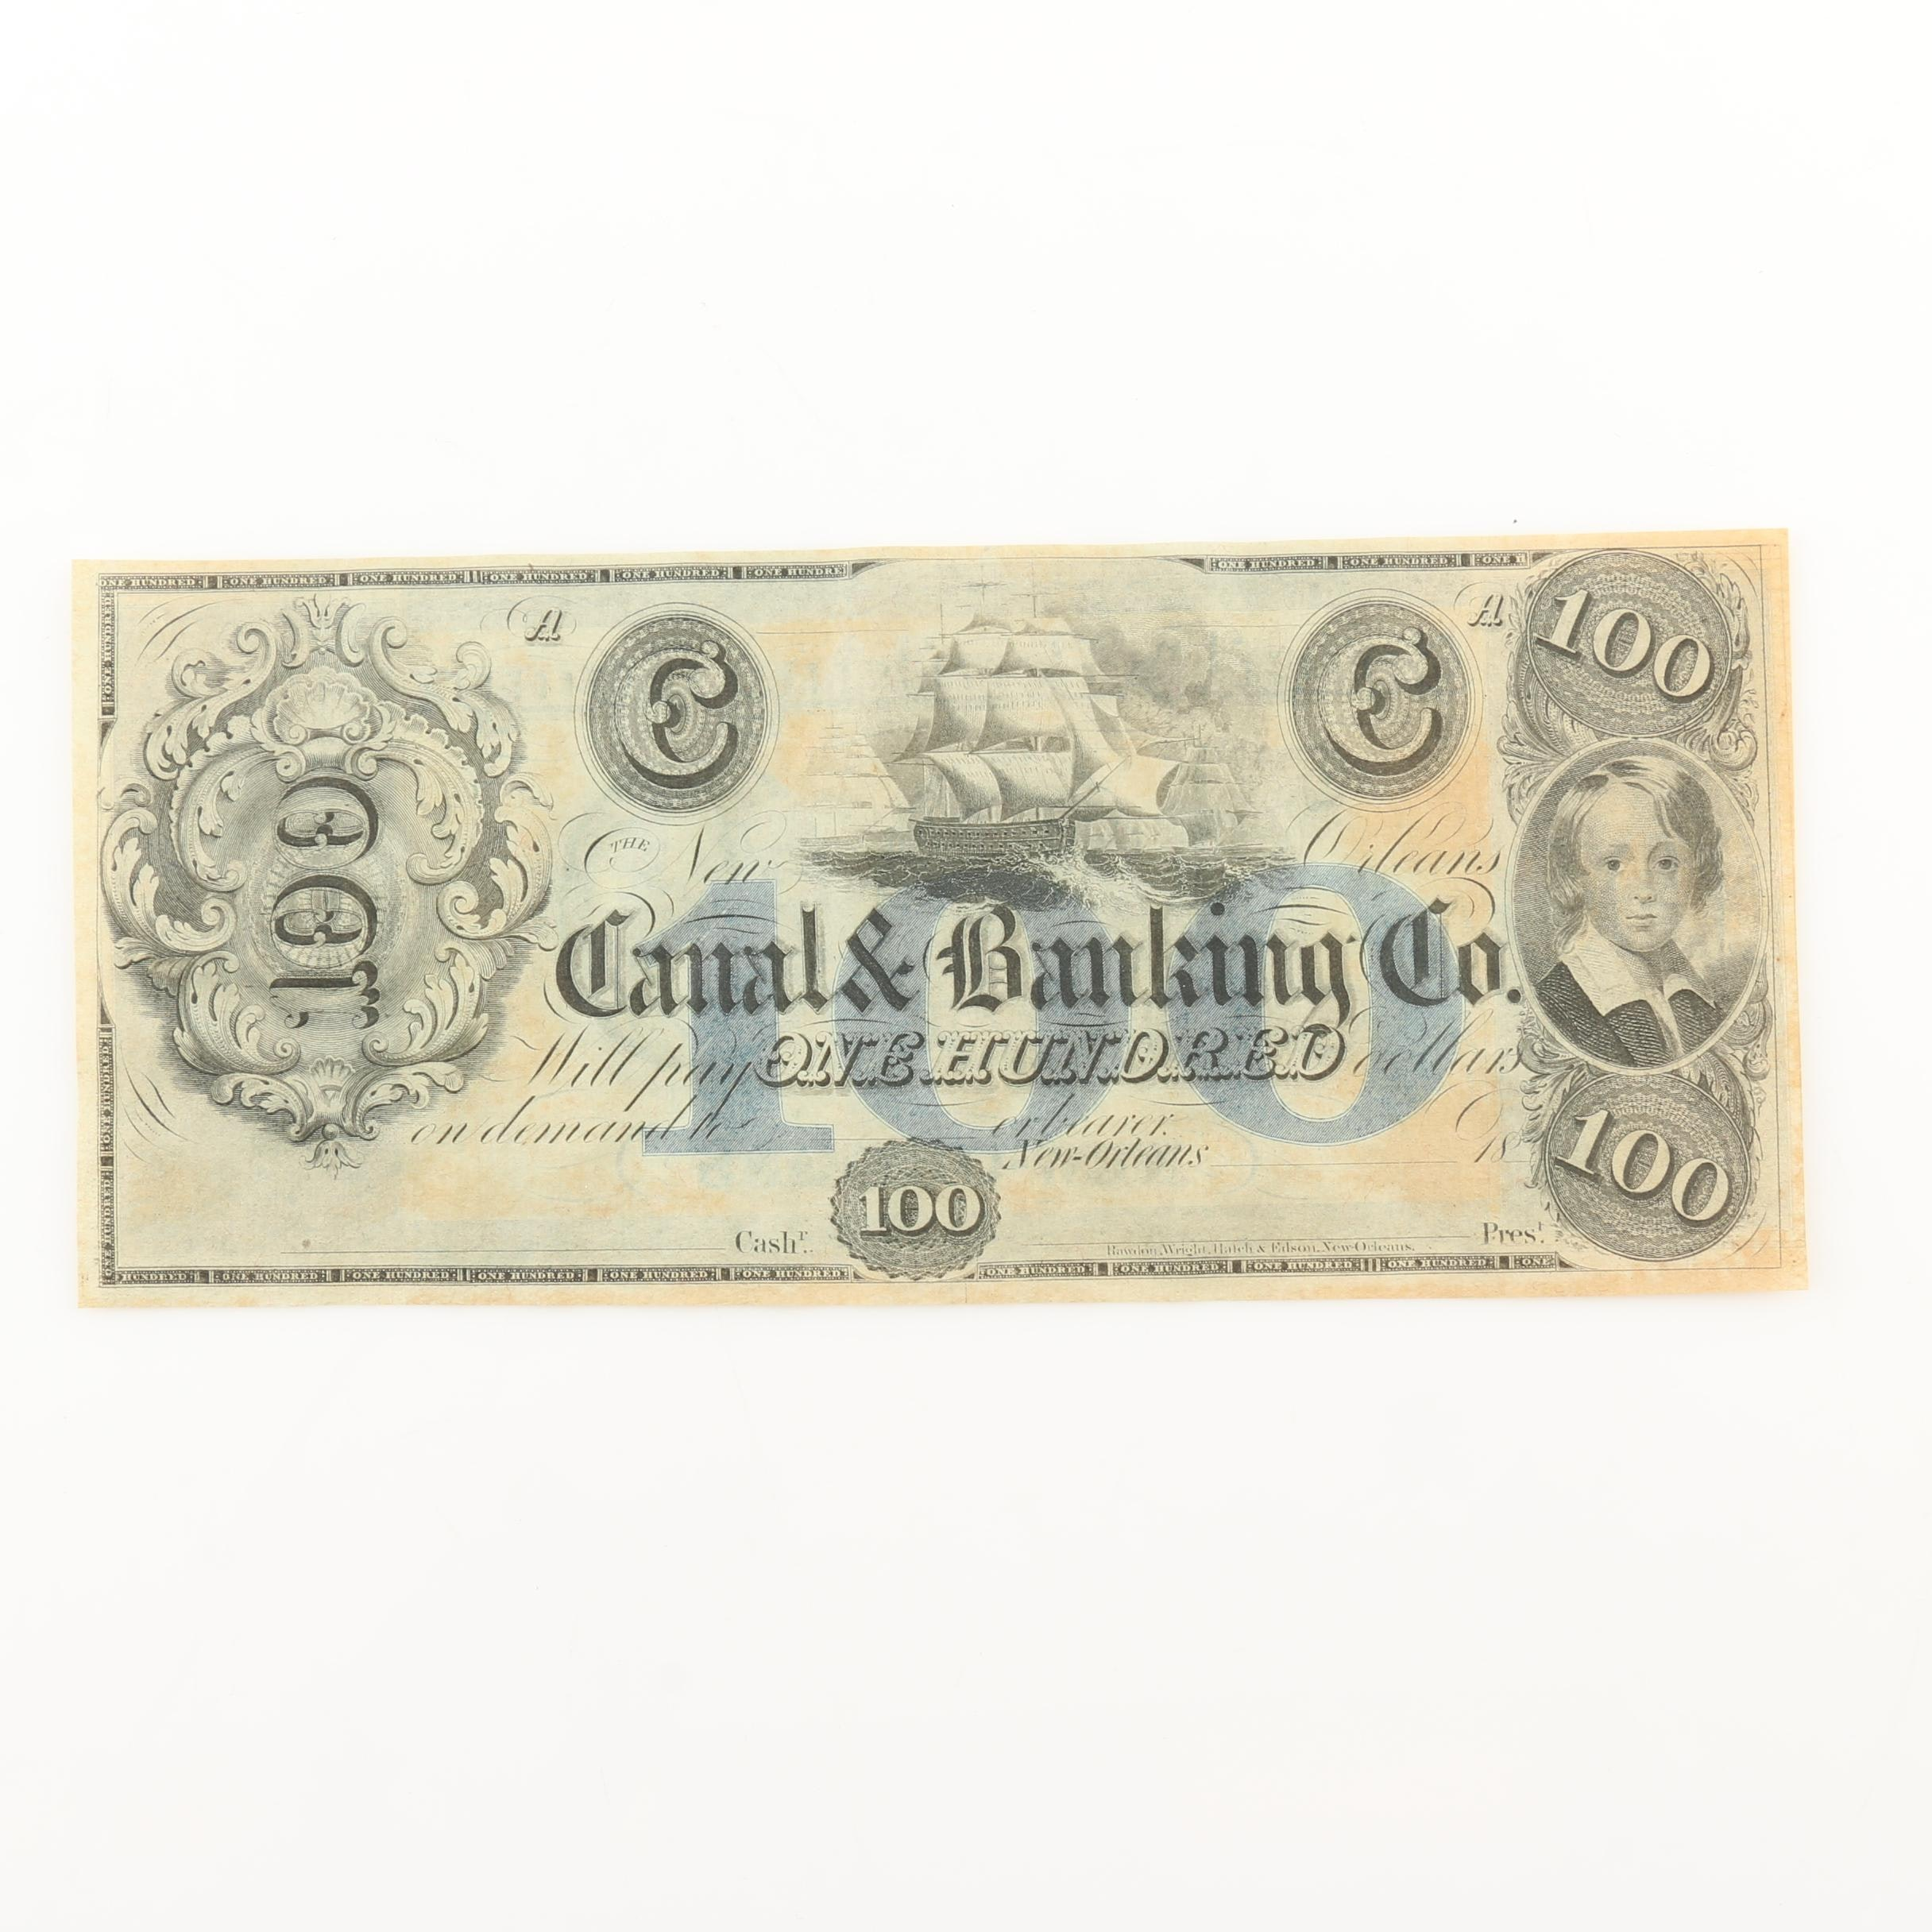 19th Century Obsolete Currency Note from Canal & Banking Company of New Orleans